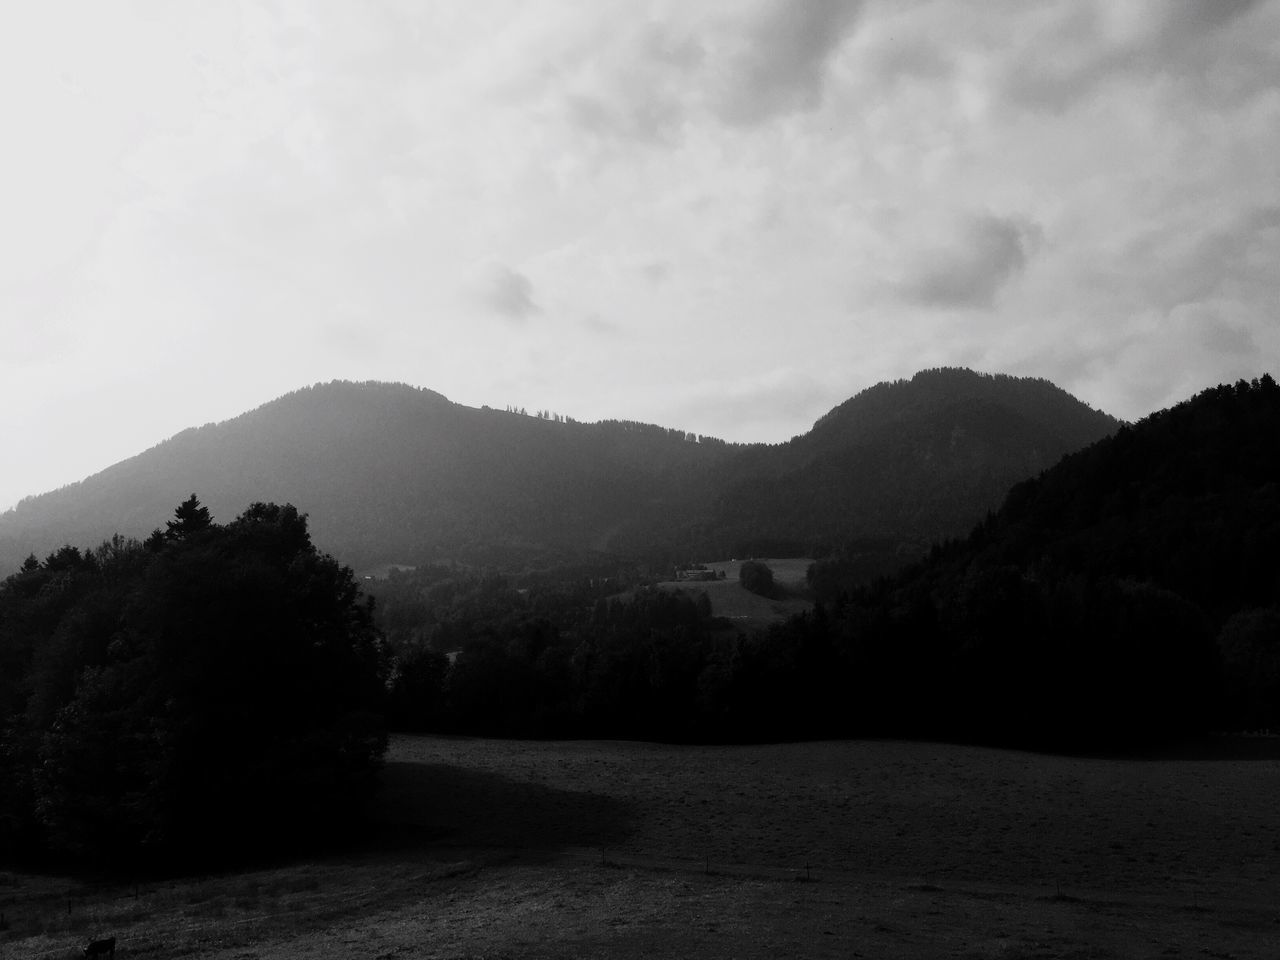 Bavarian Alps landscape Mountain Landscape Nature Tranquility Sky No People Tree Beauty In Nature Outdoors Scenics Day Mountain Range Alps Germany🇩🇪 Bavaria Grass Field Black & White